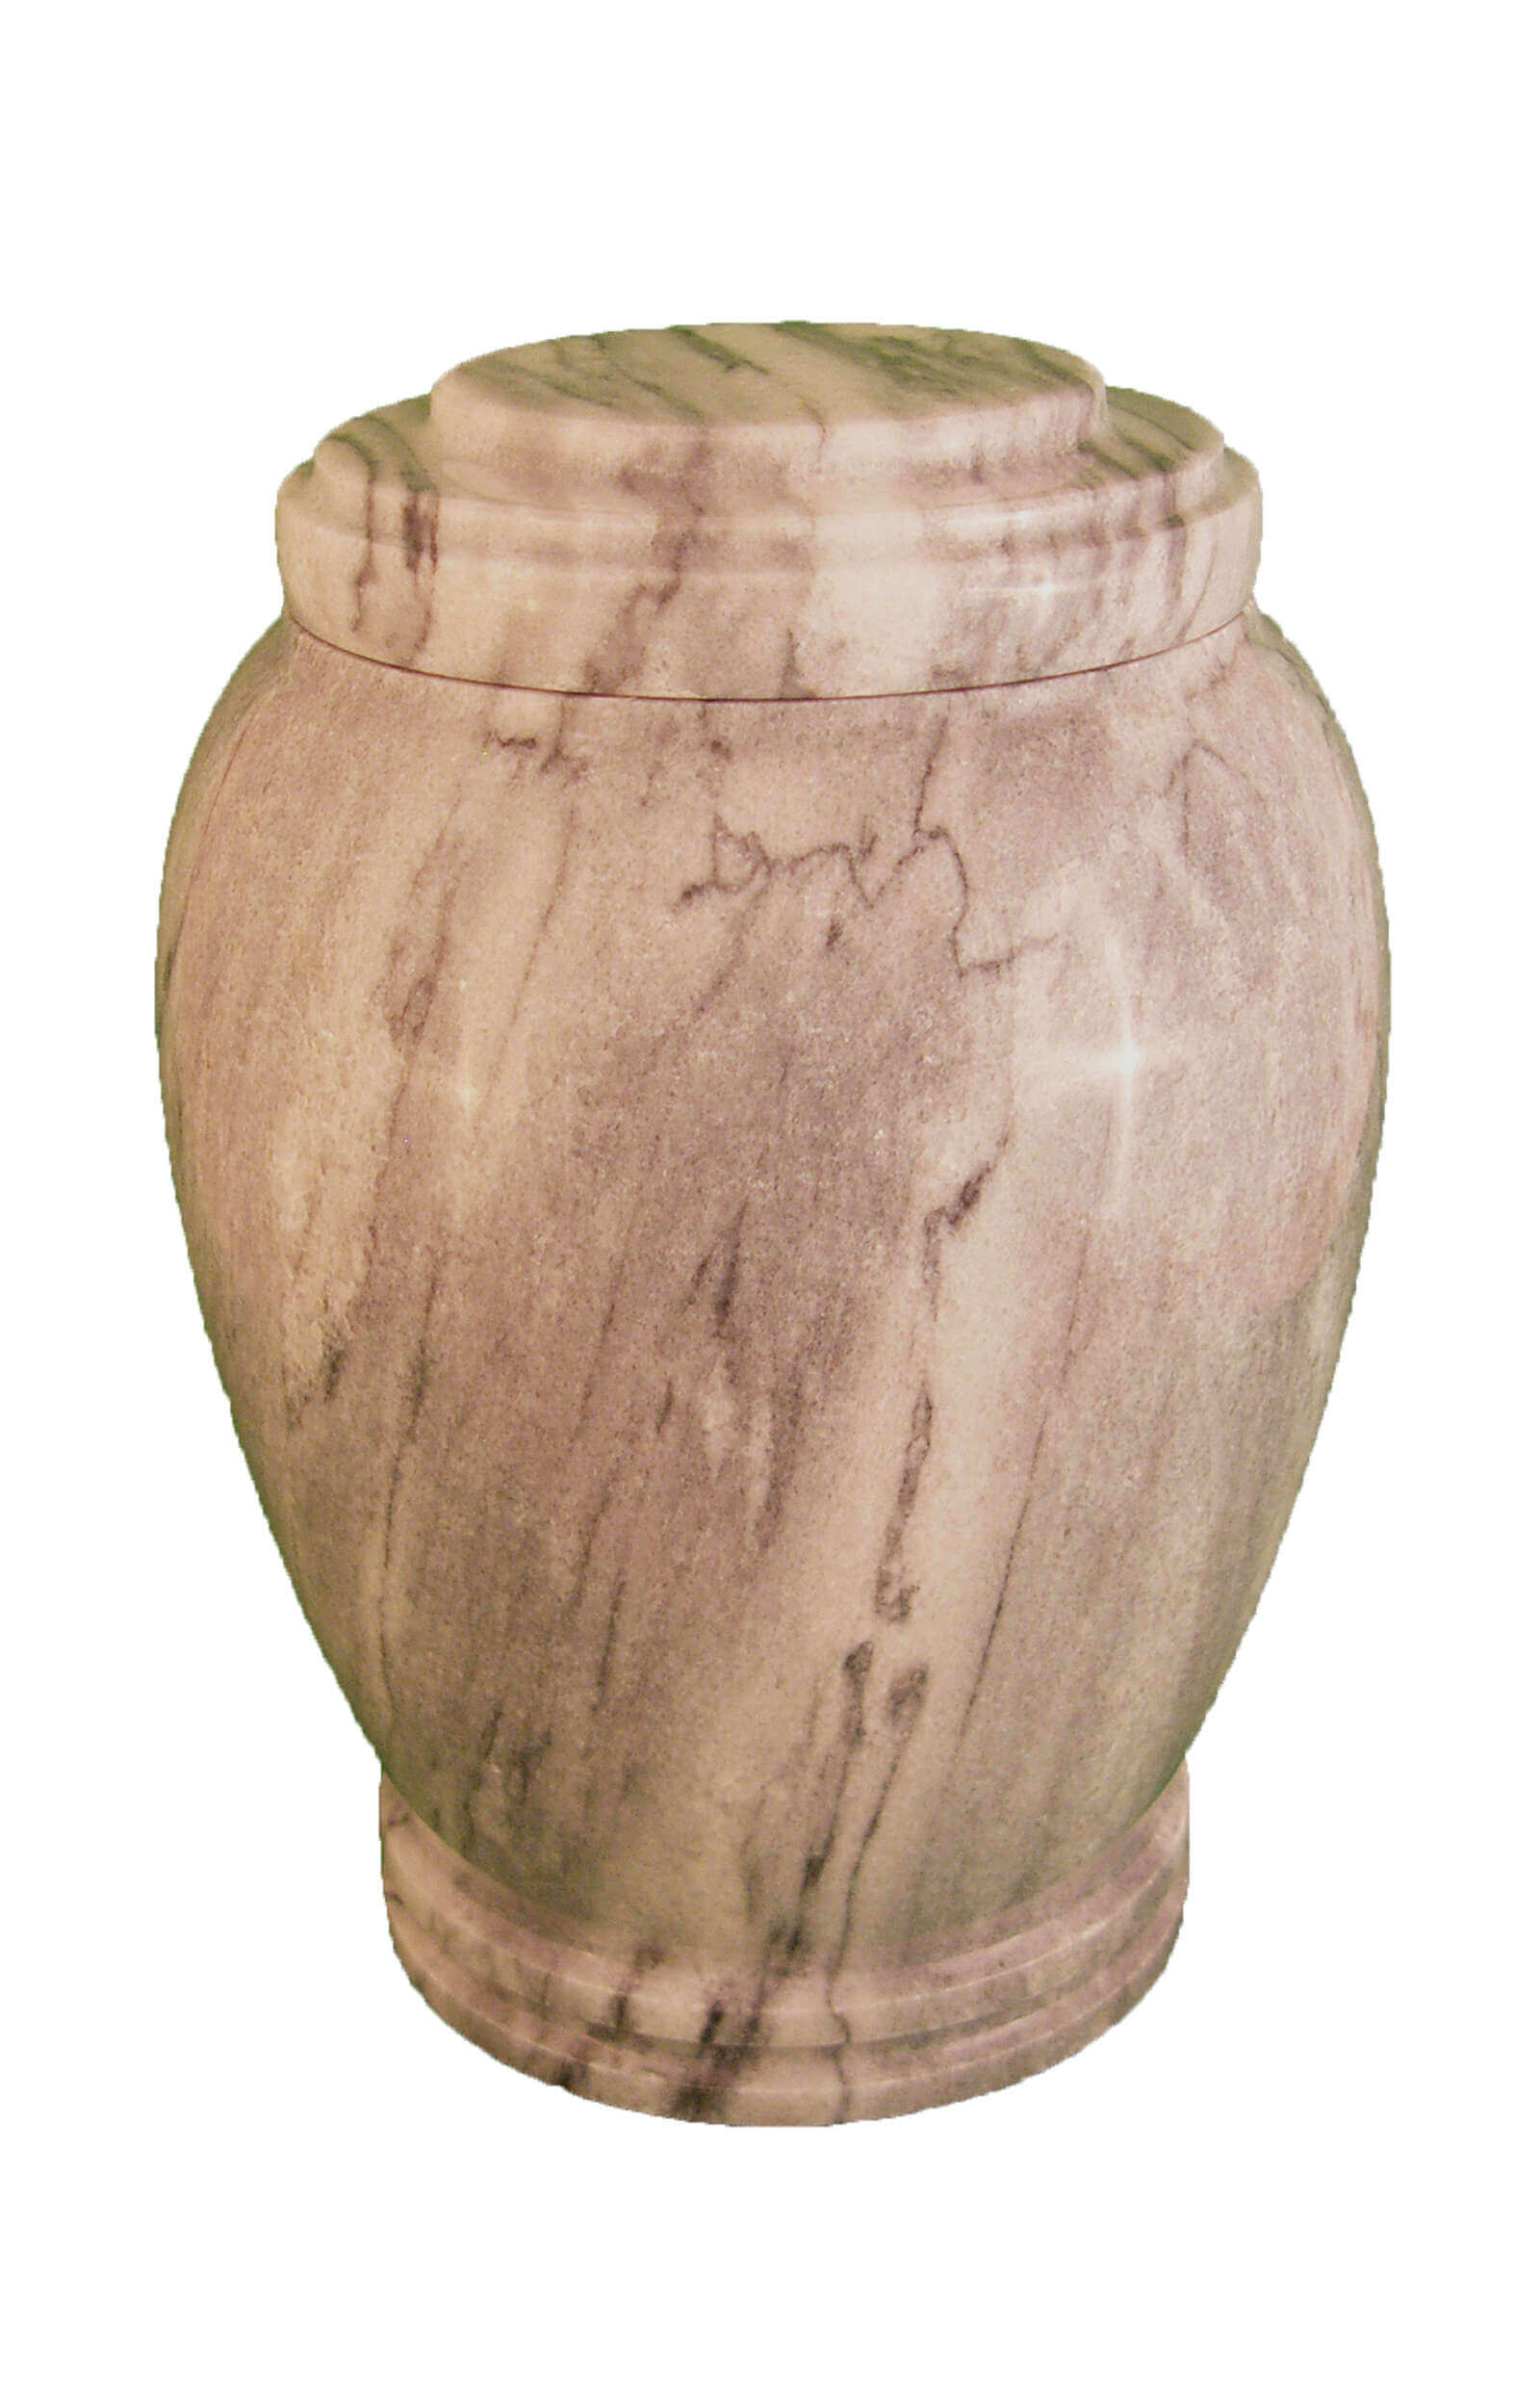 en MA2923 Zebra grey marbel urn for human ashes grey round glossy funeral urns on sale